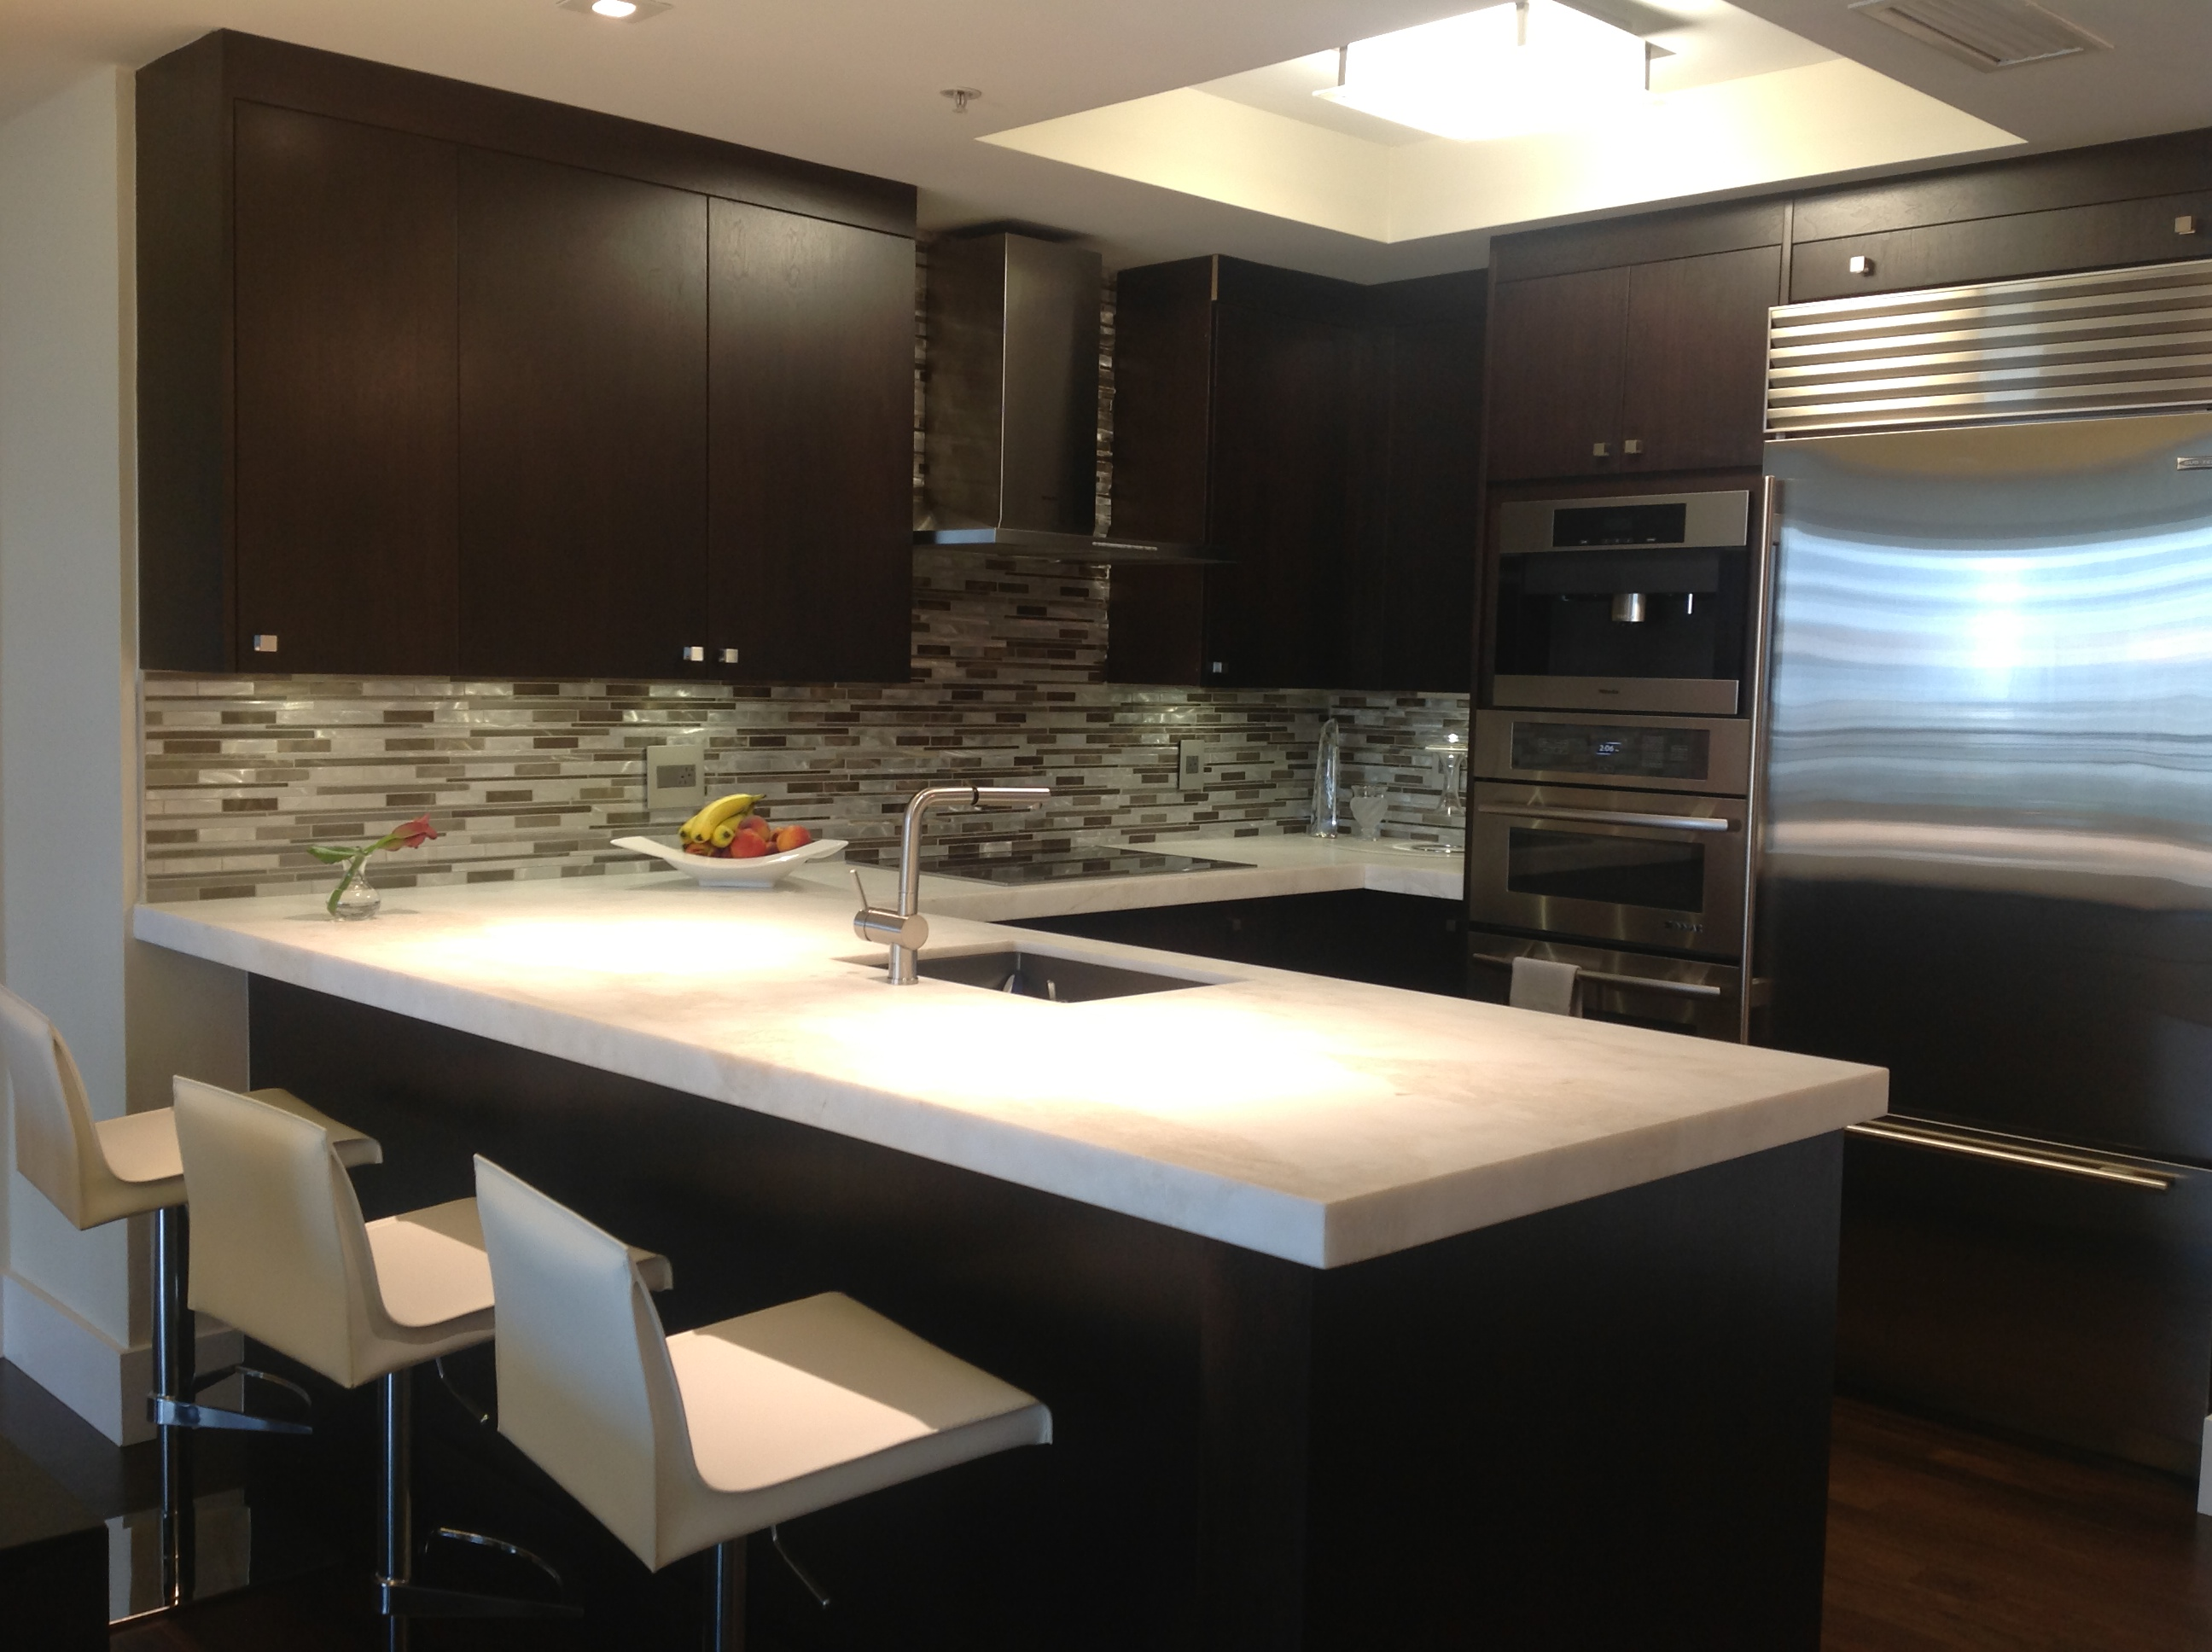 Jandj custom kitchen cabinets company luxurious kitchen for Custom kitchen remodeling